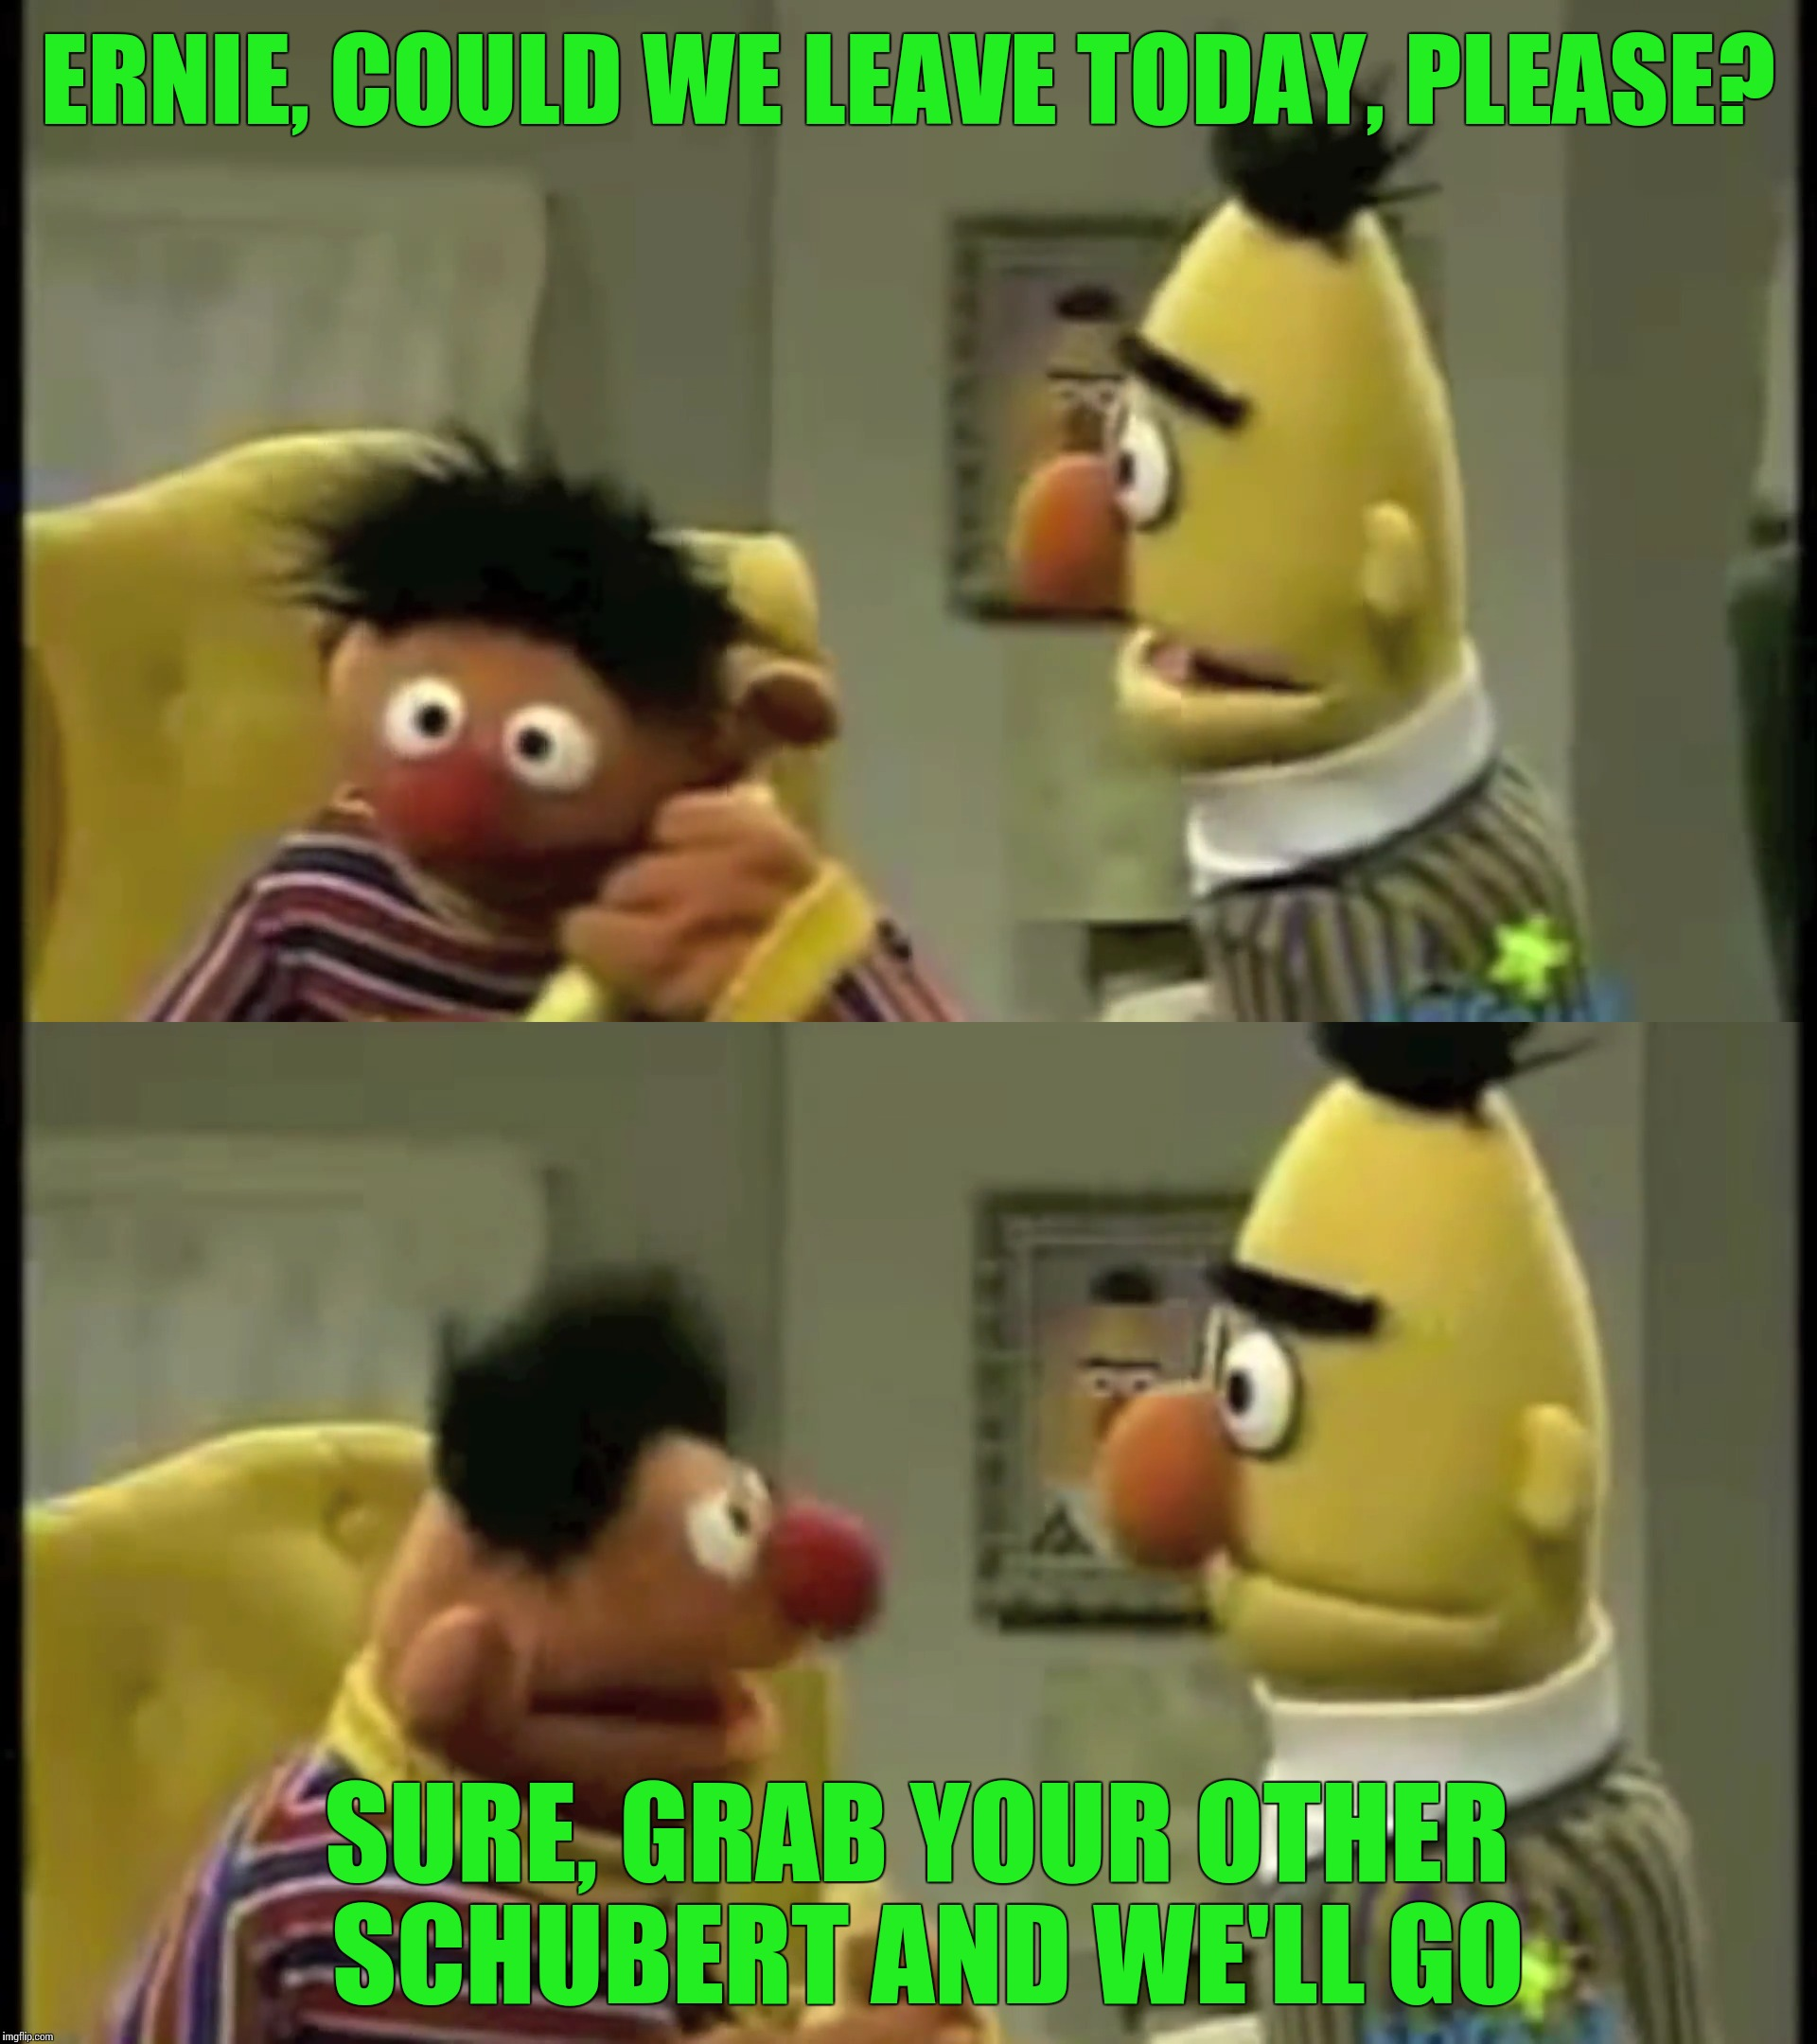 ERNIE, COULD WE LEAVE TODAY, PLEASE? SURE, GRAB YOUR OTHER SCHUBERT AND WE'LL GO | made w/ Imgflip meme maker